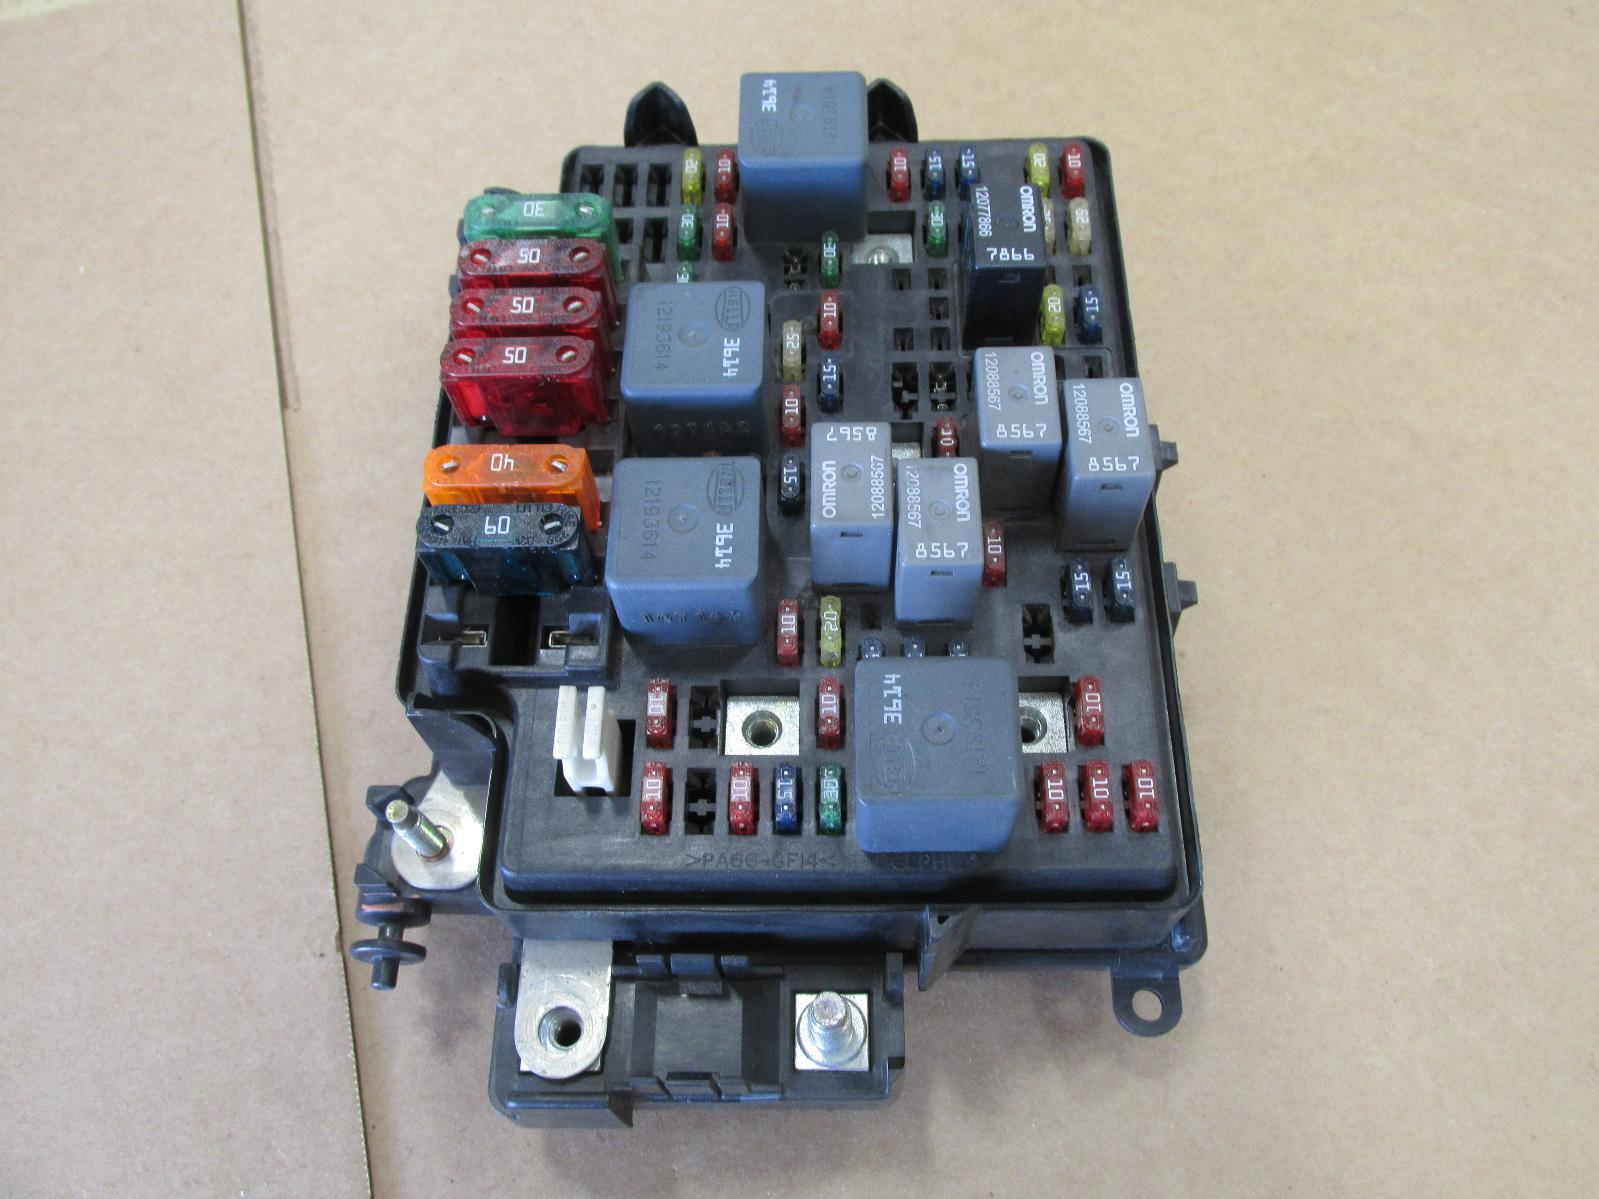 2000 Chevy Tahoe Fuse Box Download Wiring Diagrams 1995 Land Rover Defender Location For Chevrolet Auto Locations 2004